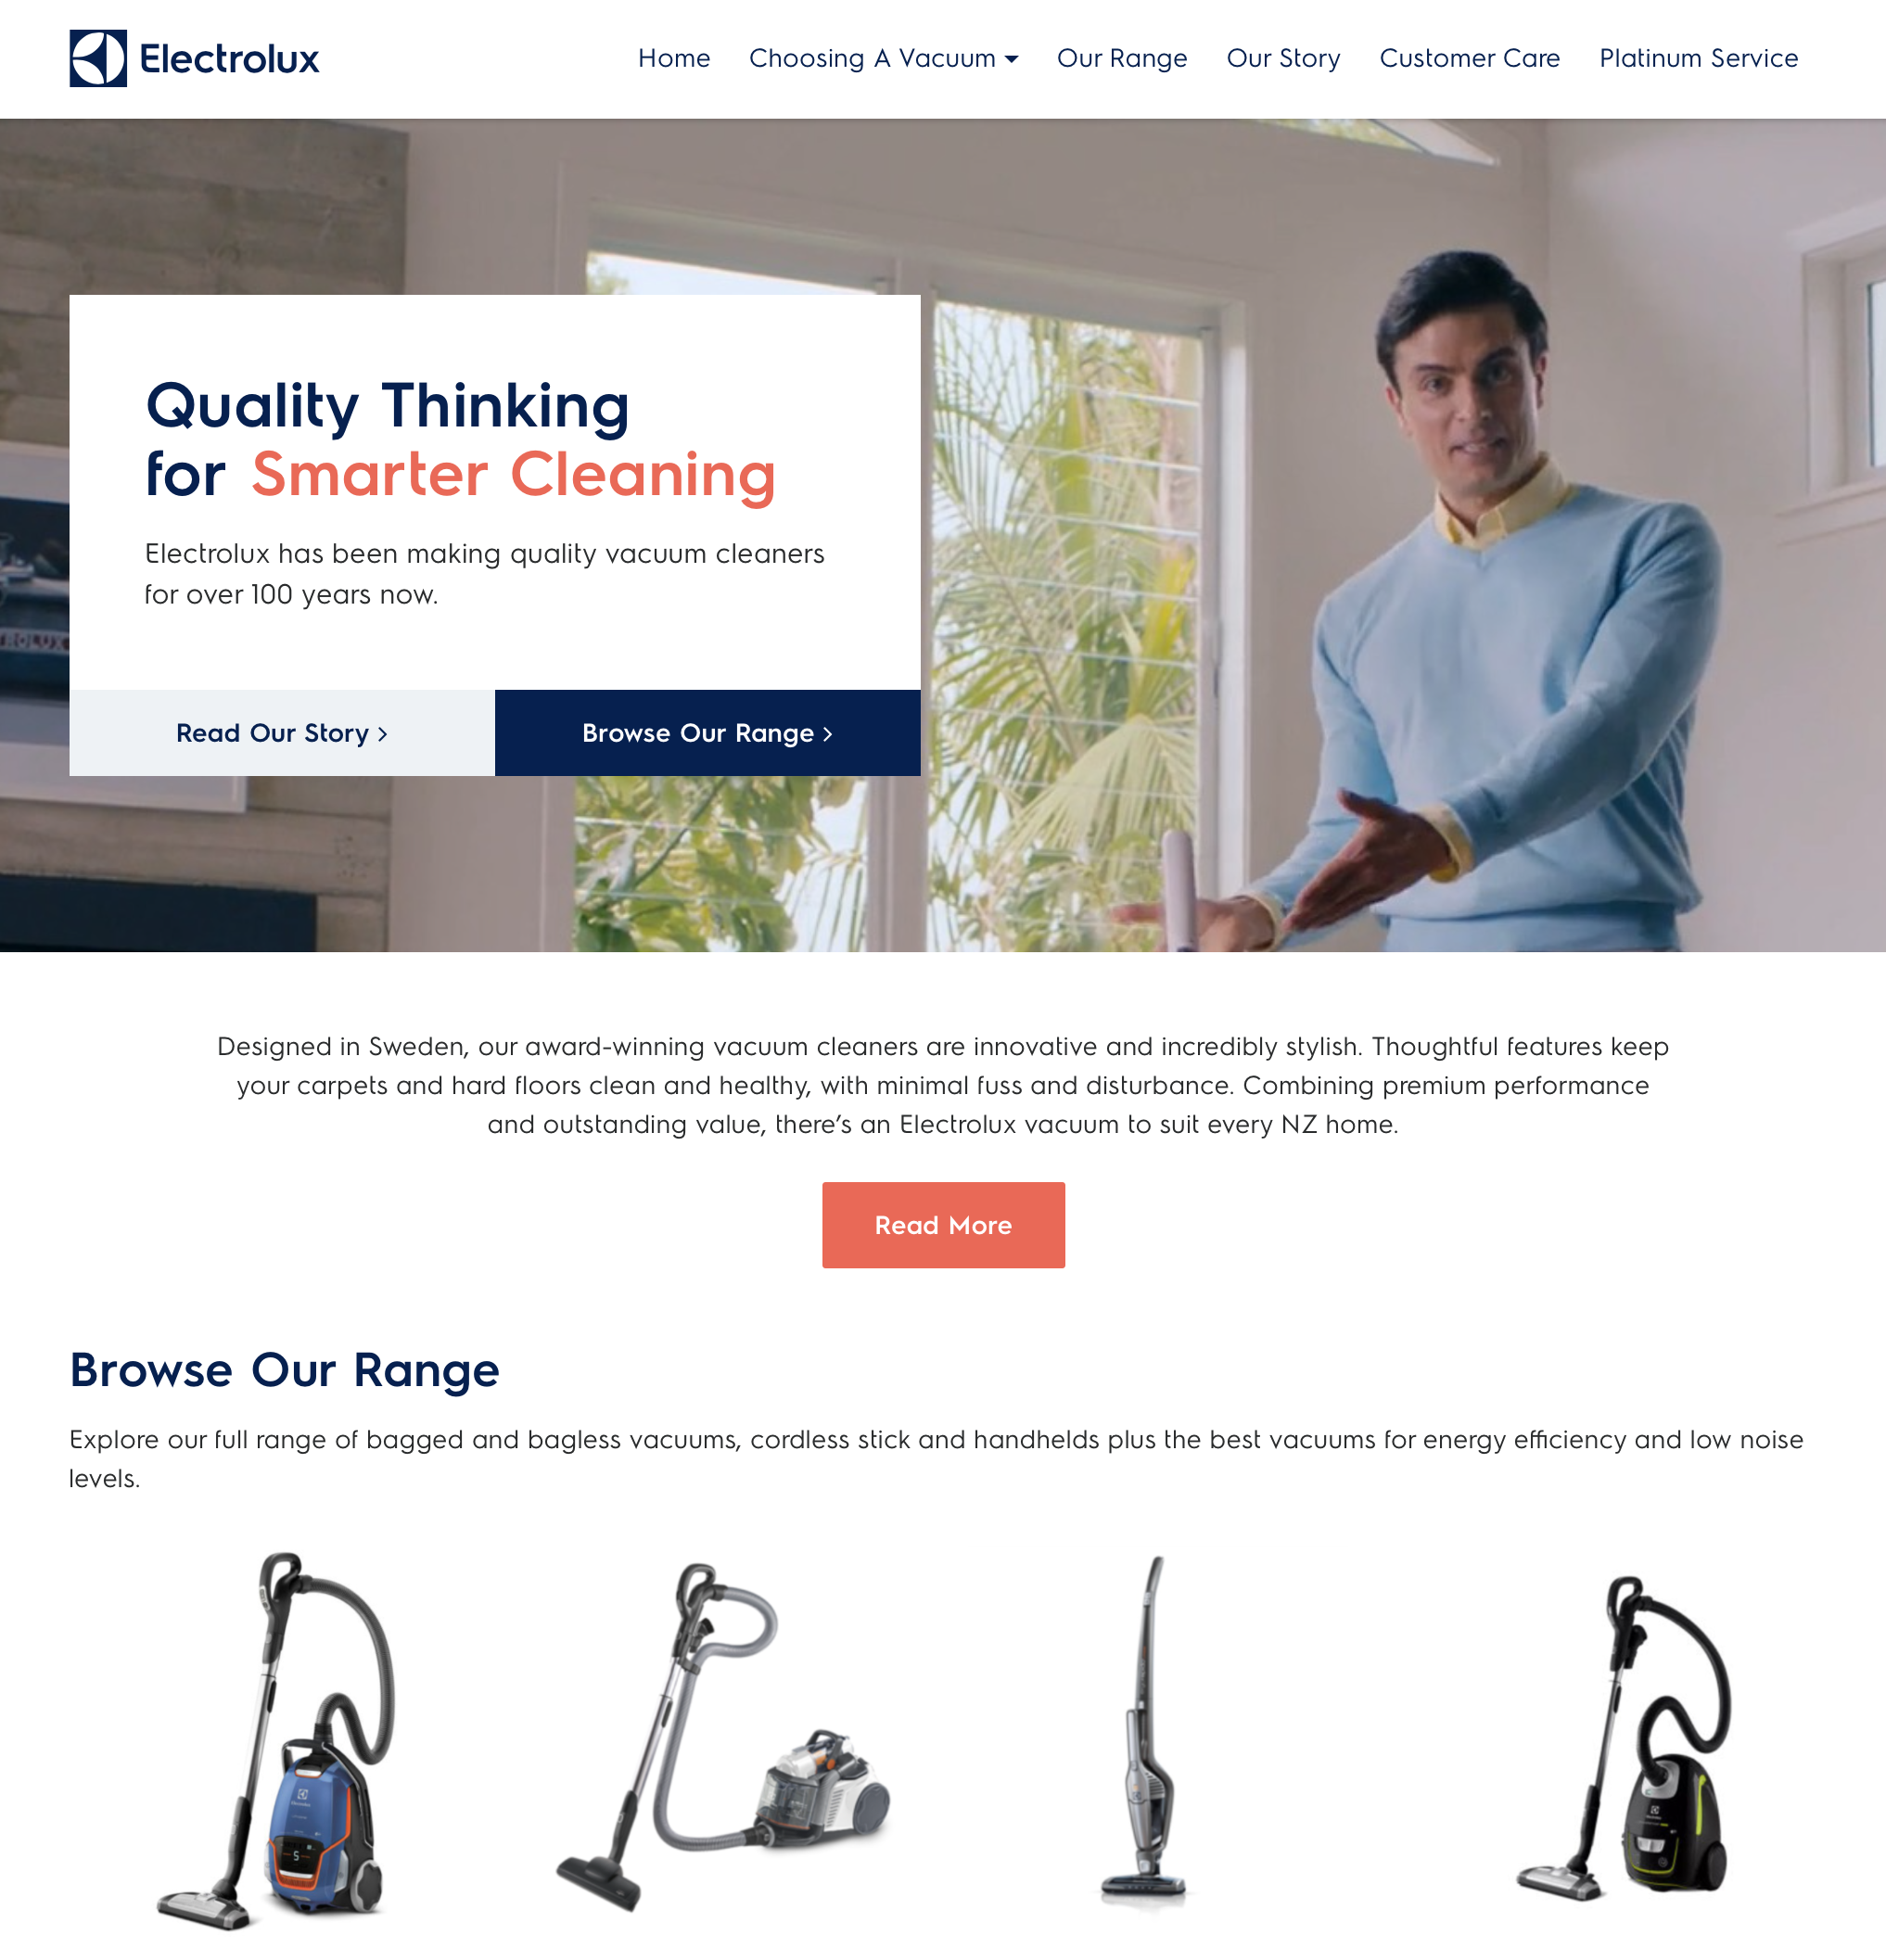 Electrolux Vacuums Website Home Page